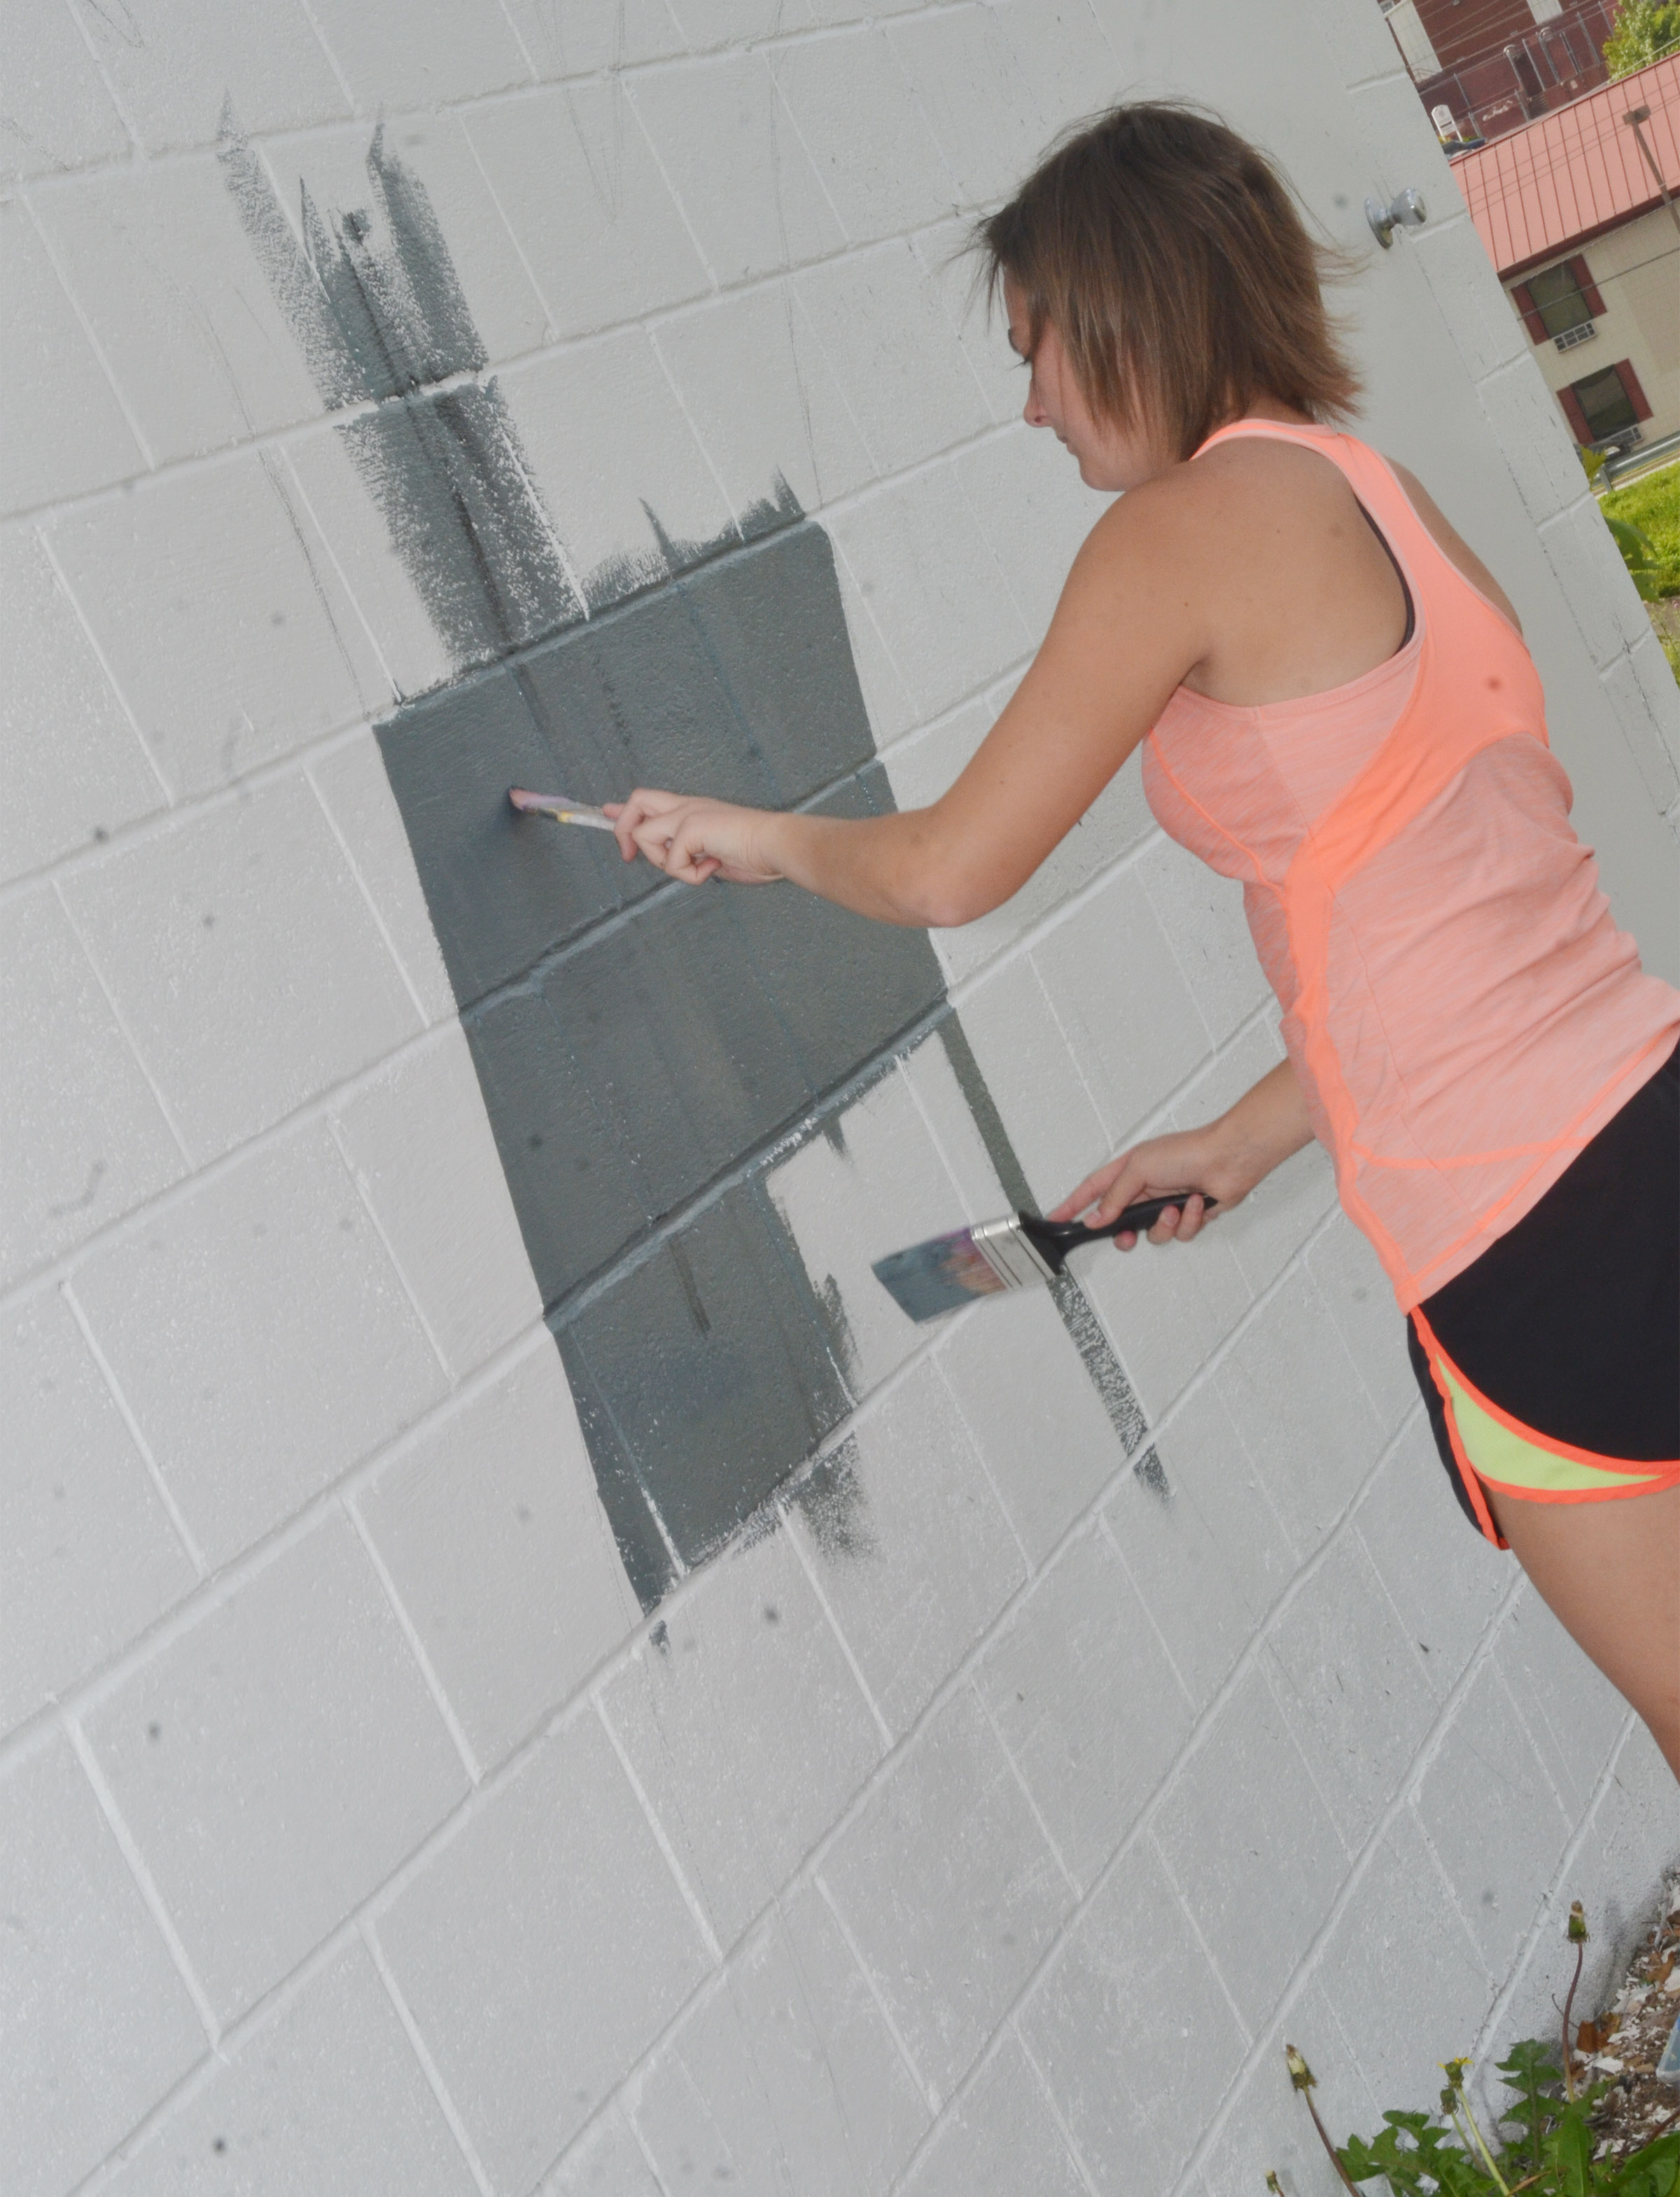 Kyrsten Hill, who graduated from CHS in May, paints the mural.